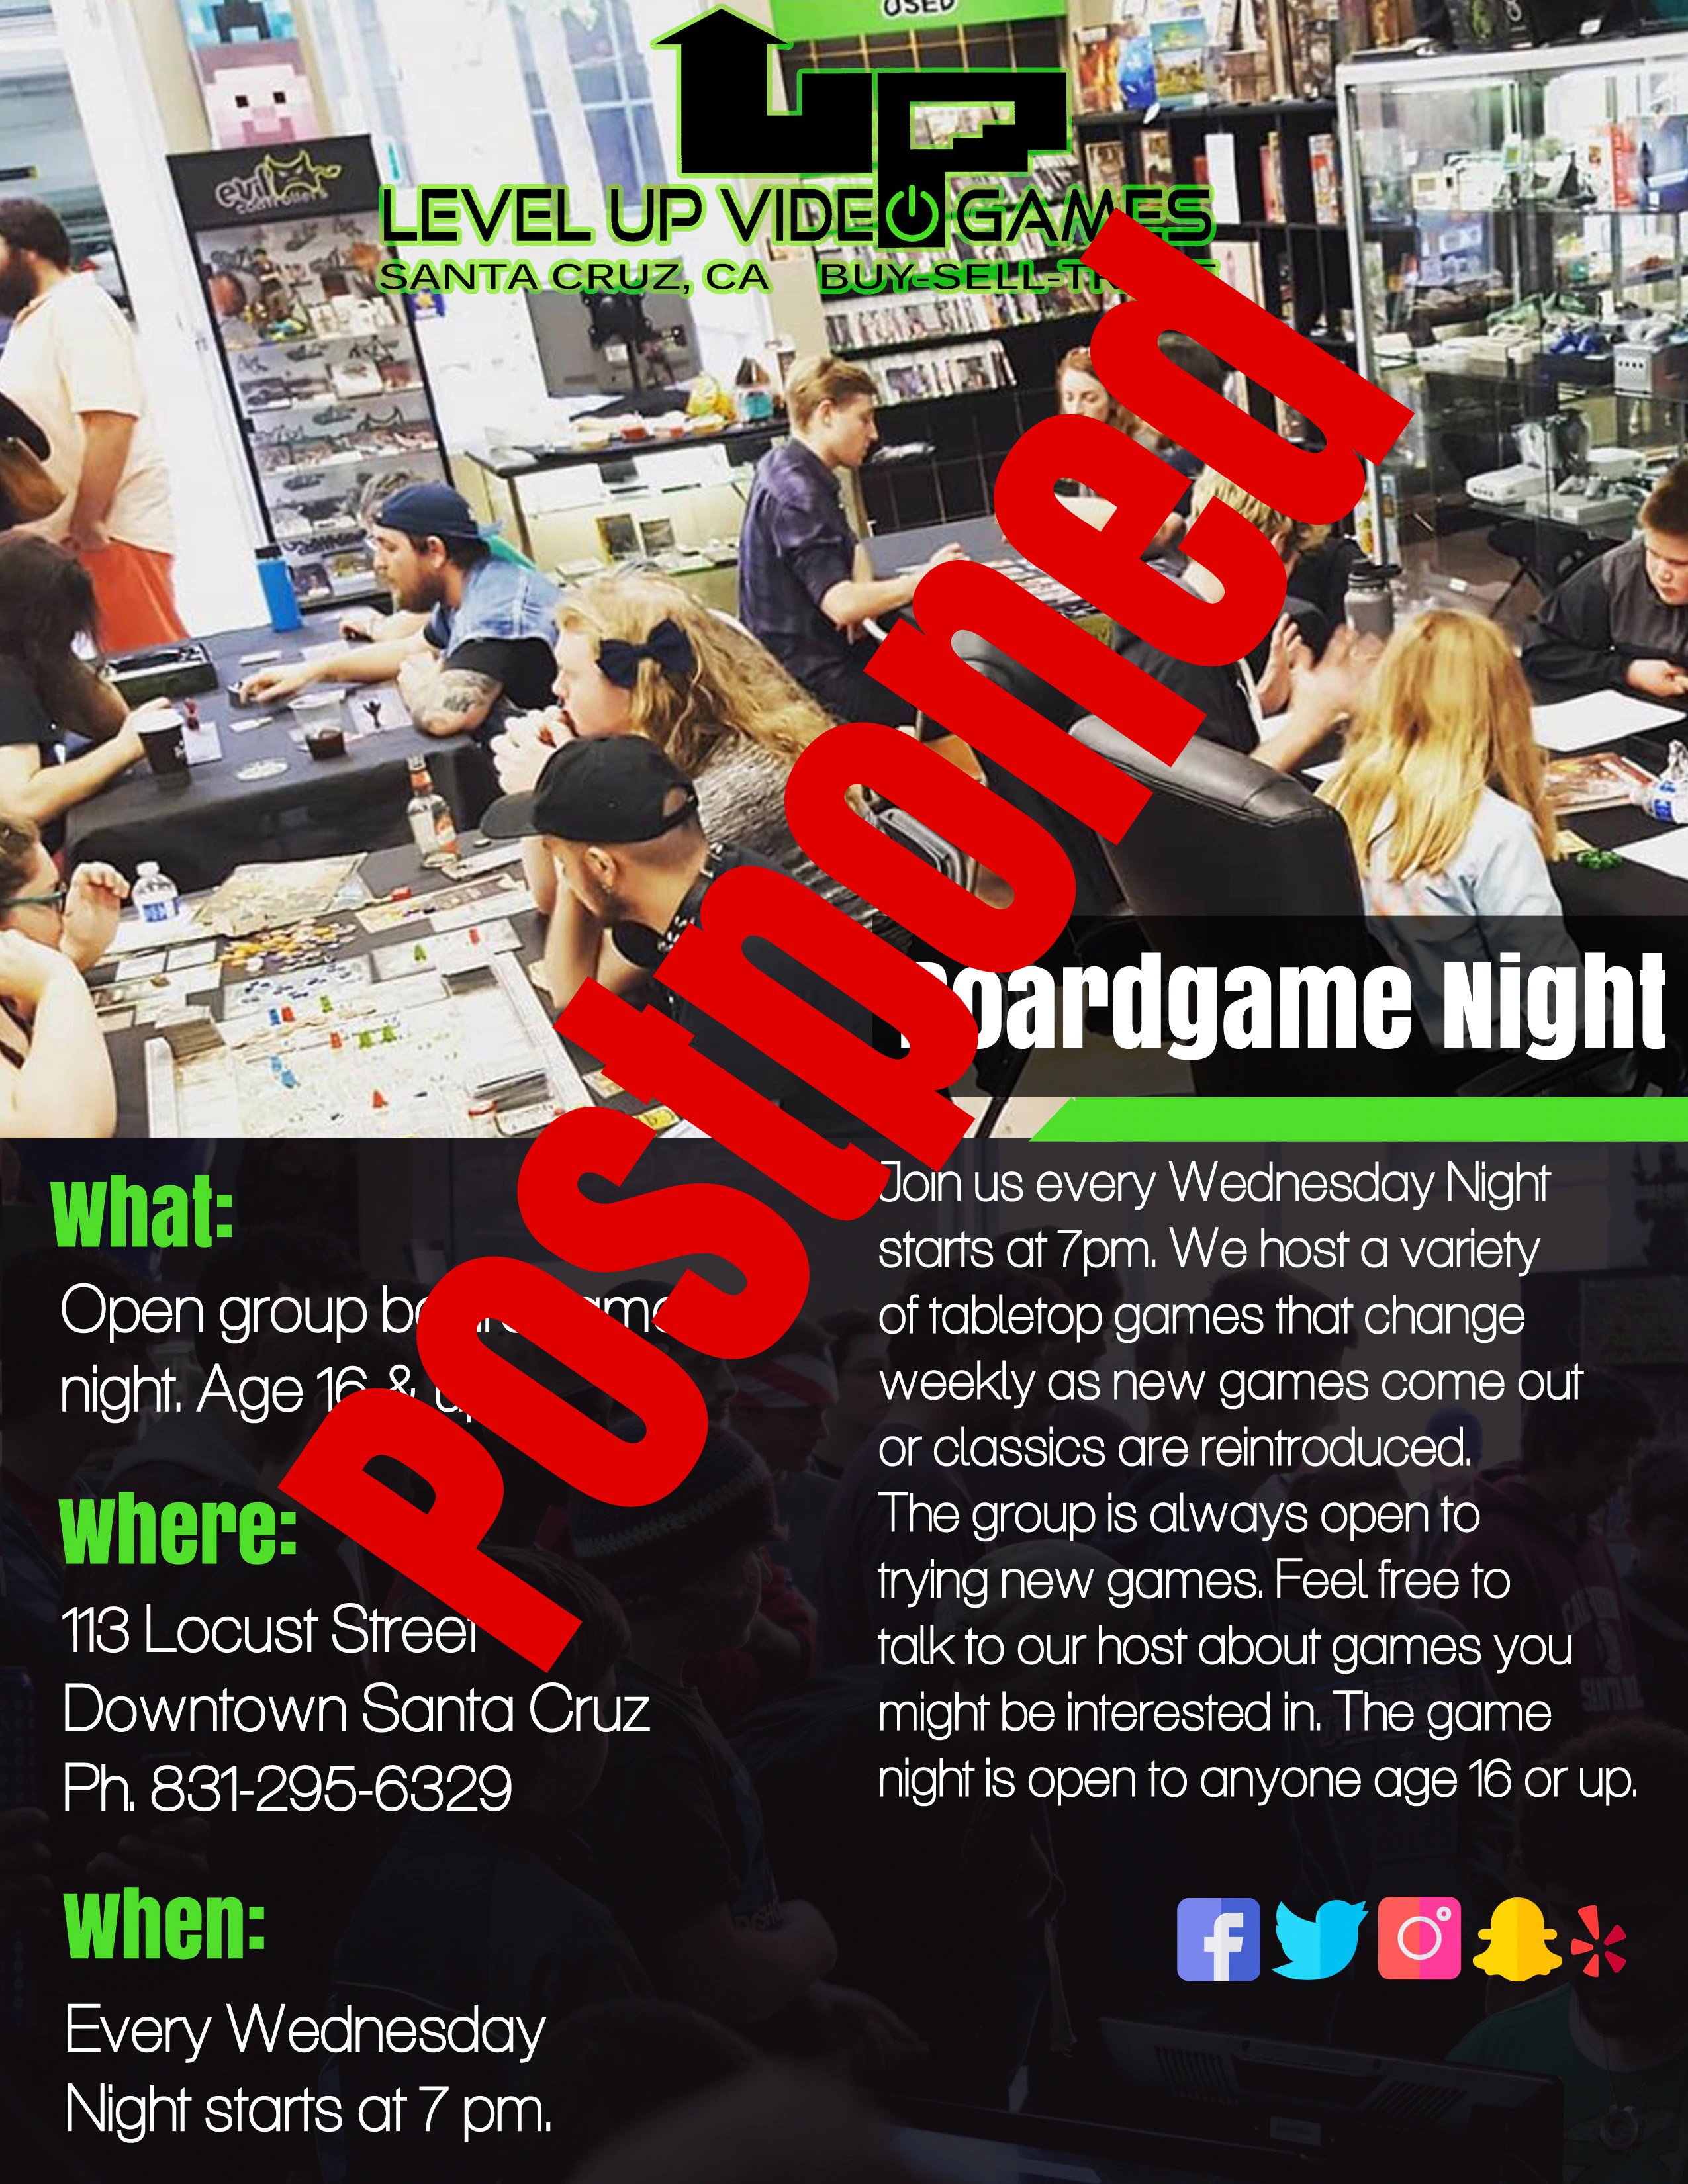 boardgamenight-flier1.jpg